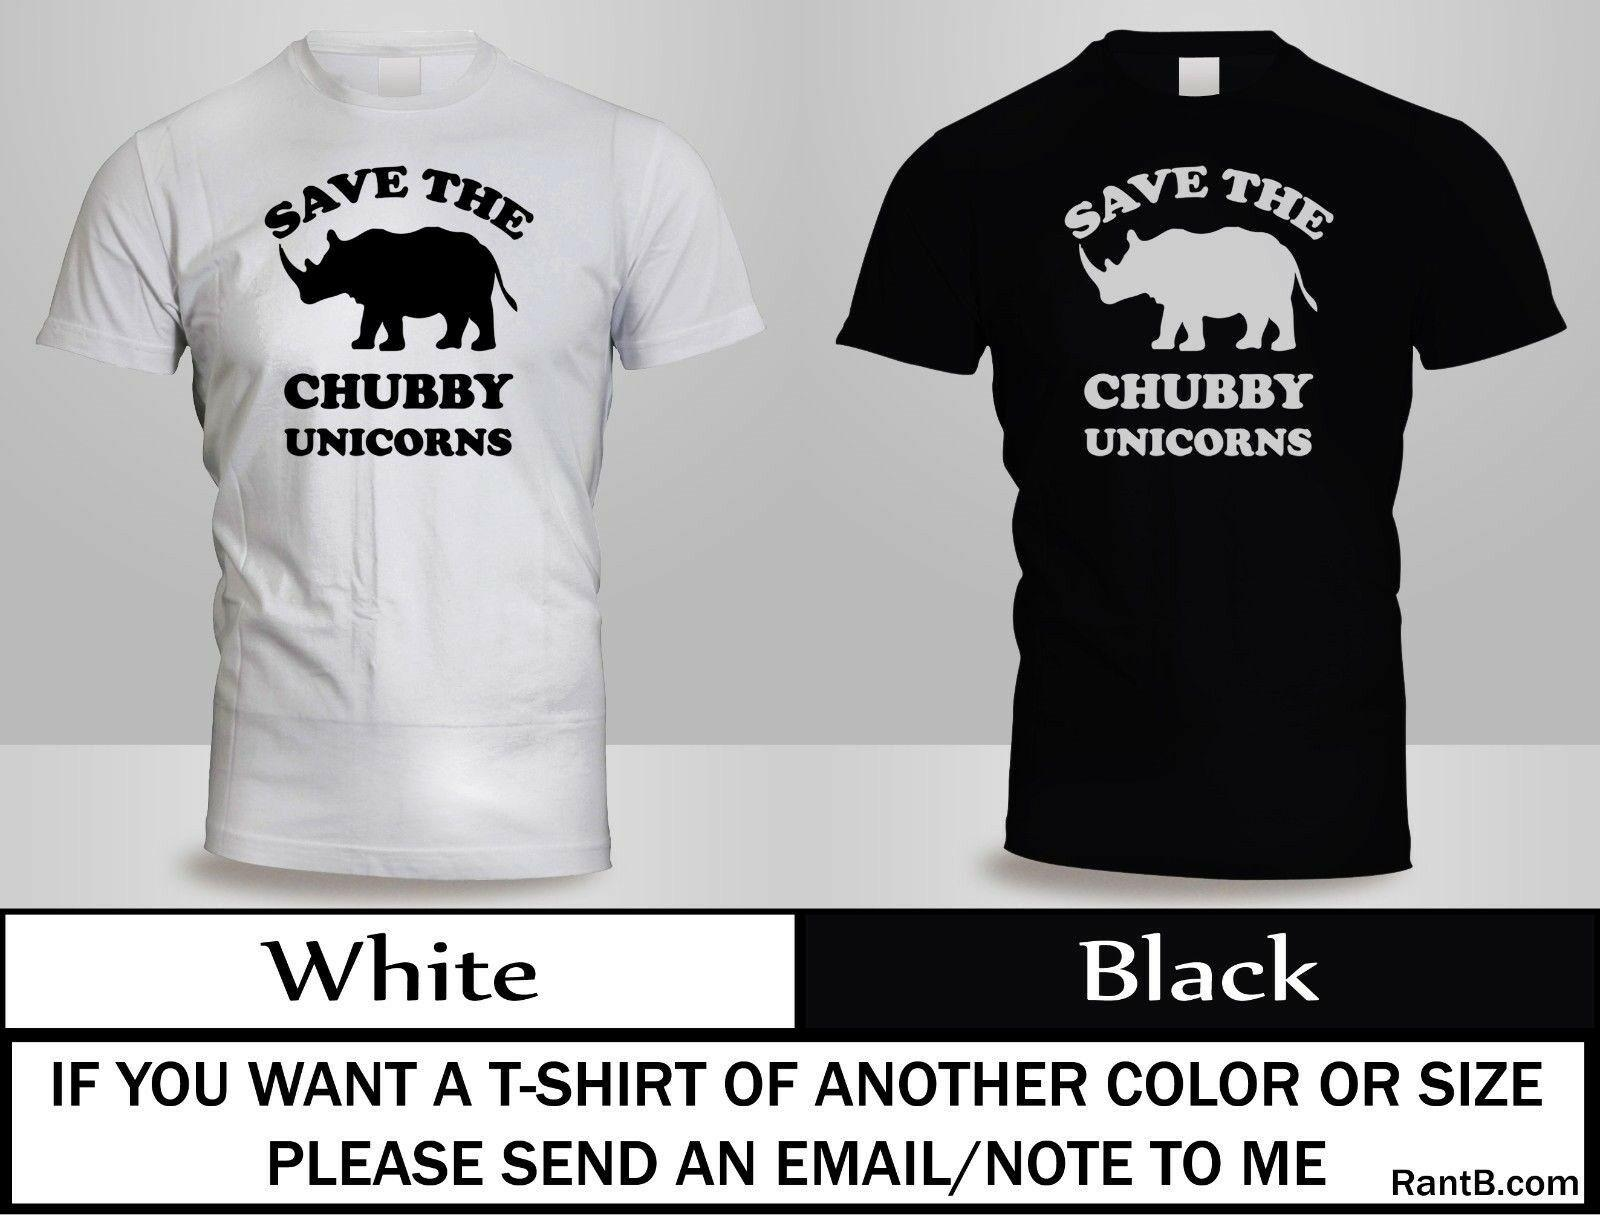 aae58068 NEW SAVE THE CHUBBY UNICORNS T SHIRT HIPSTER RHINO MENS BLACK&WHITE SHIRT 2  Funny Unisex Casual Awesome T Shirts Designs Cool Funny Shirts From ...